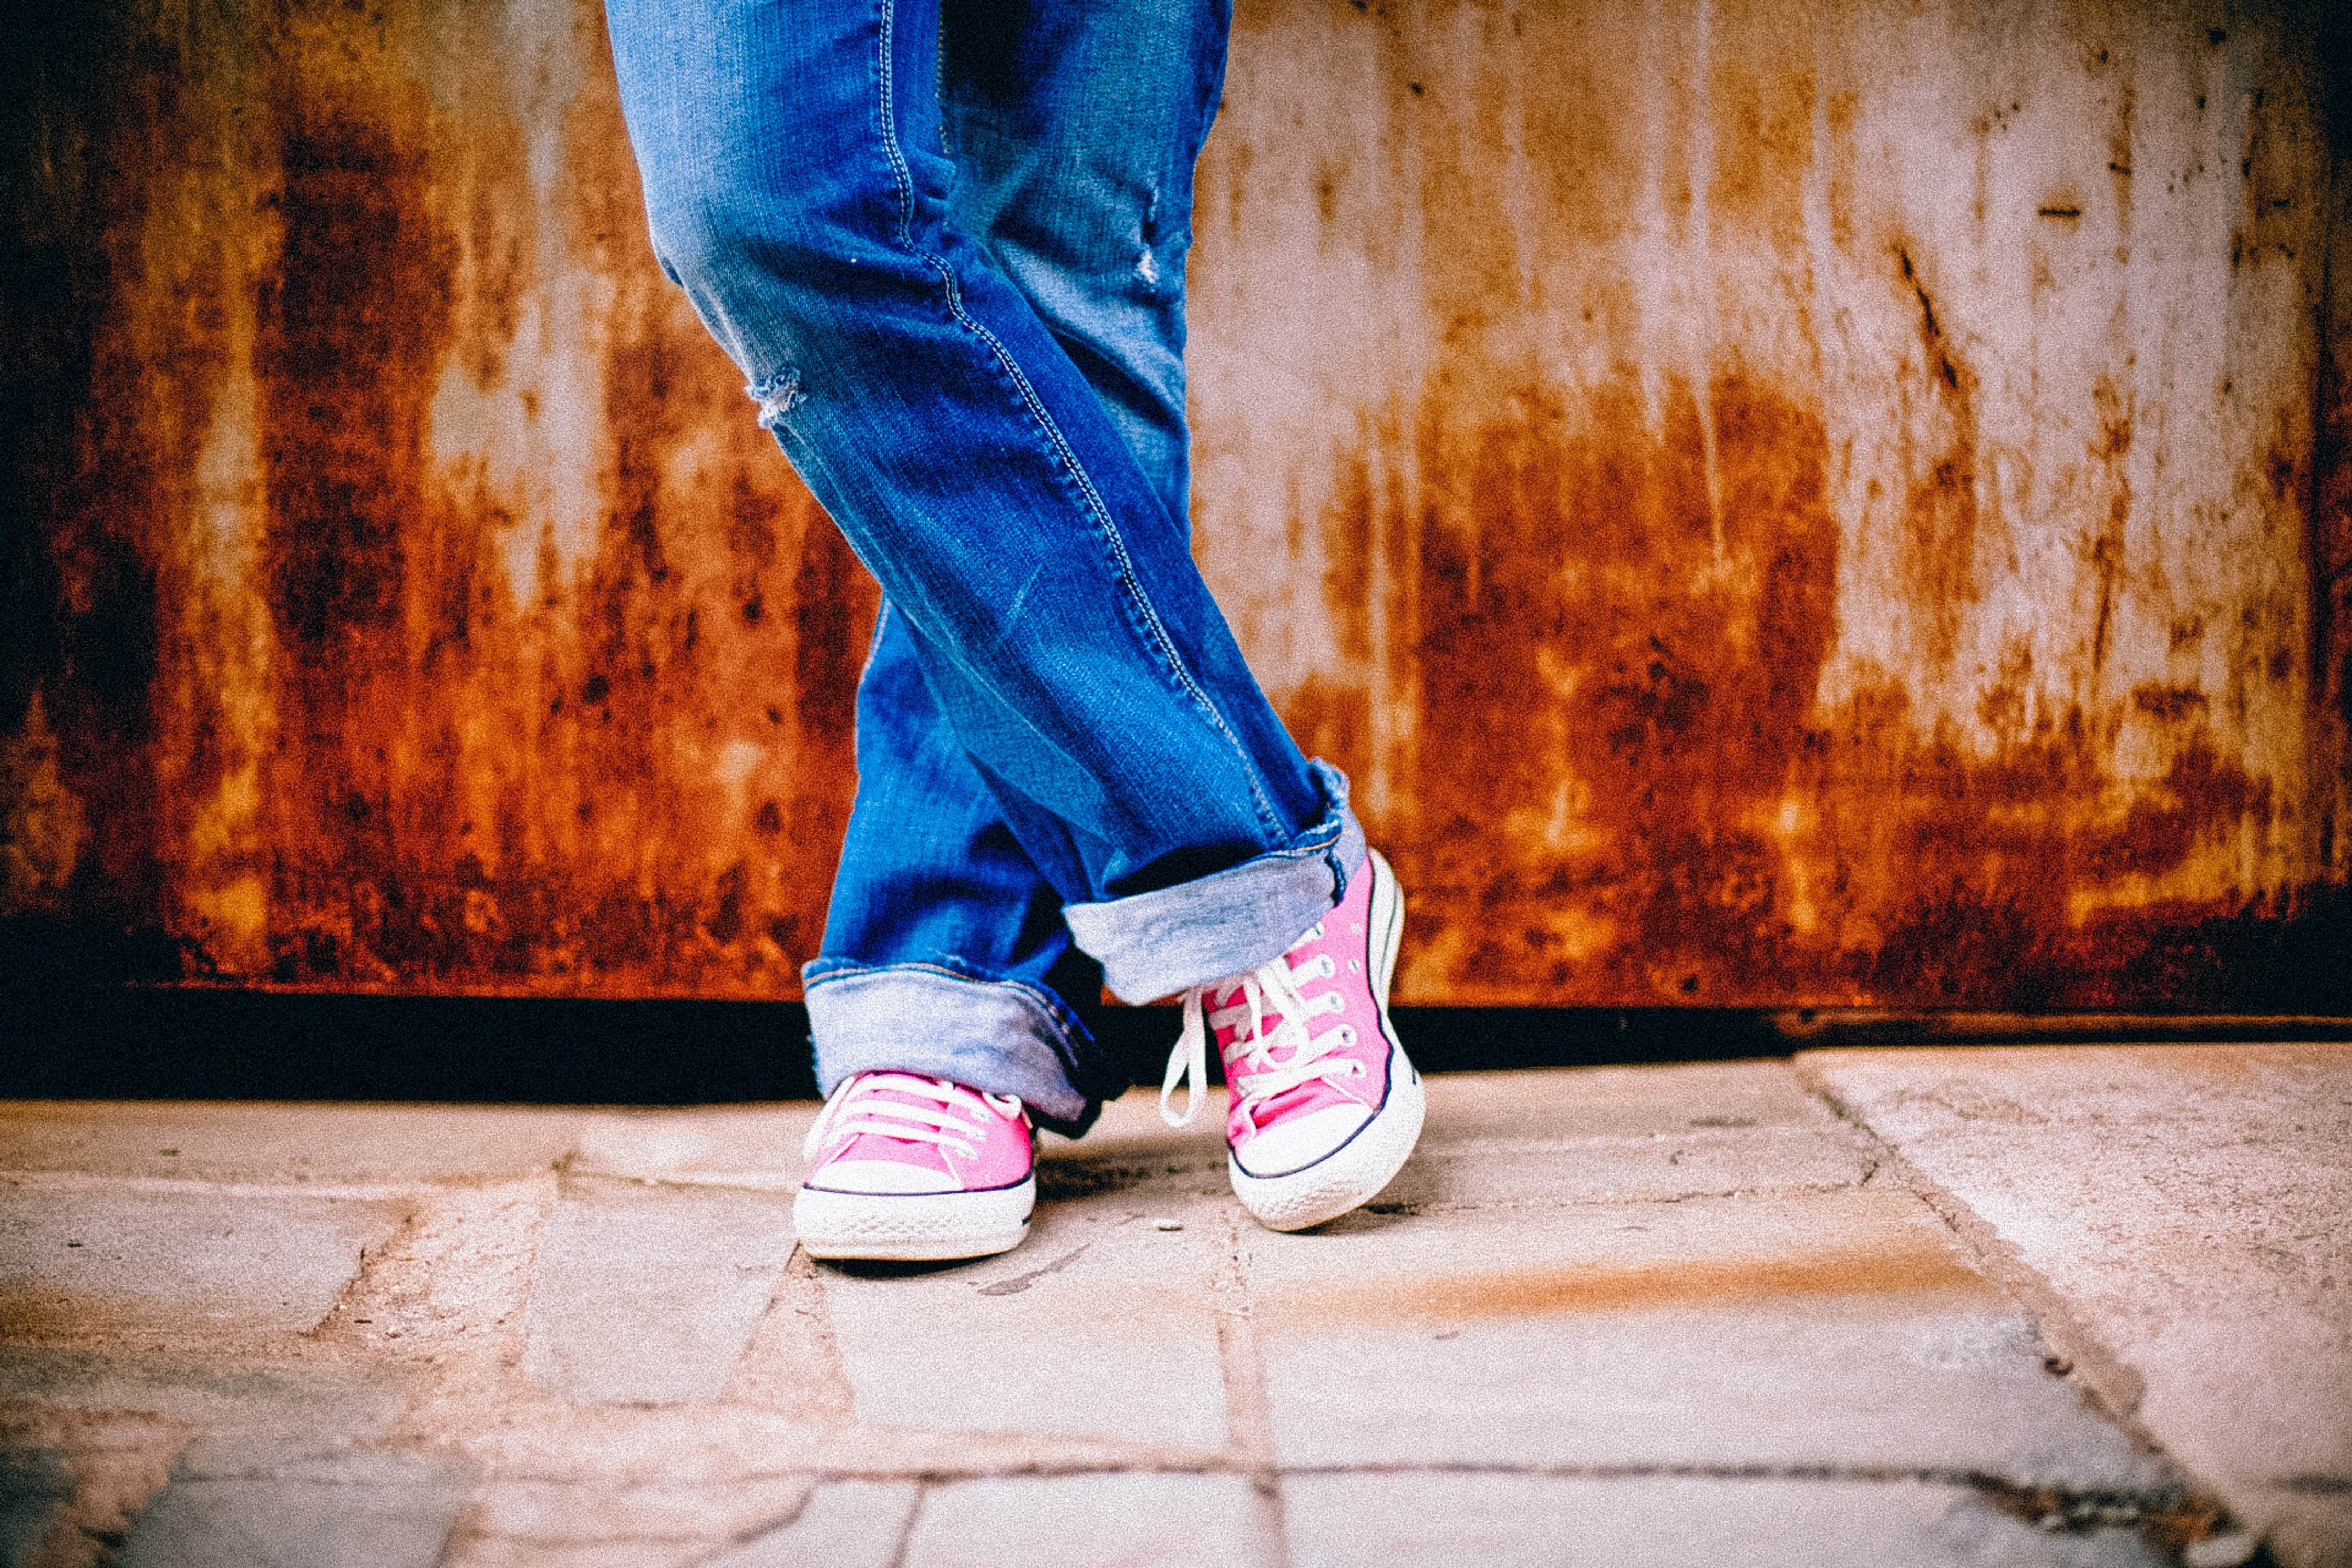 7a644c2e85a3 Person in Blue Jeans and Pink White Converse All Star Sneakers ...